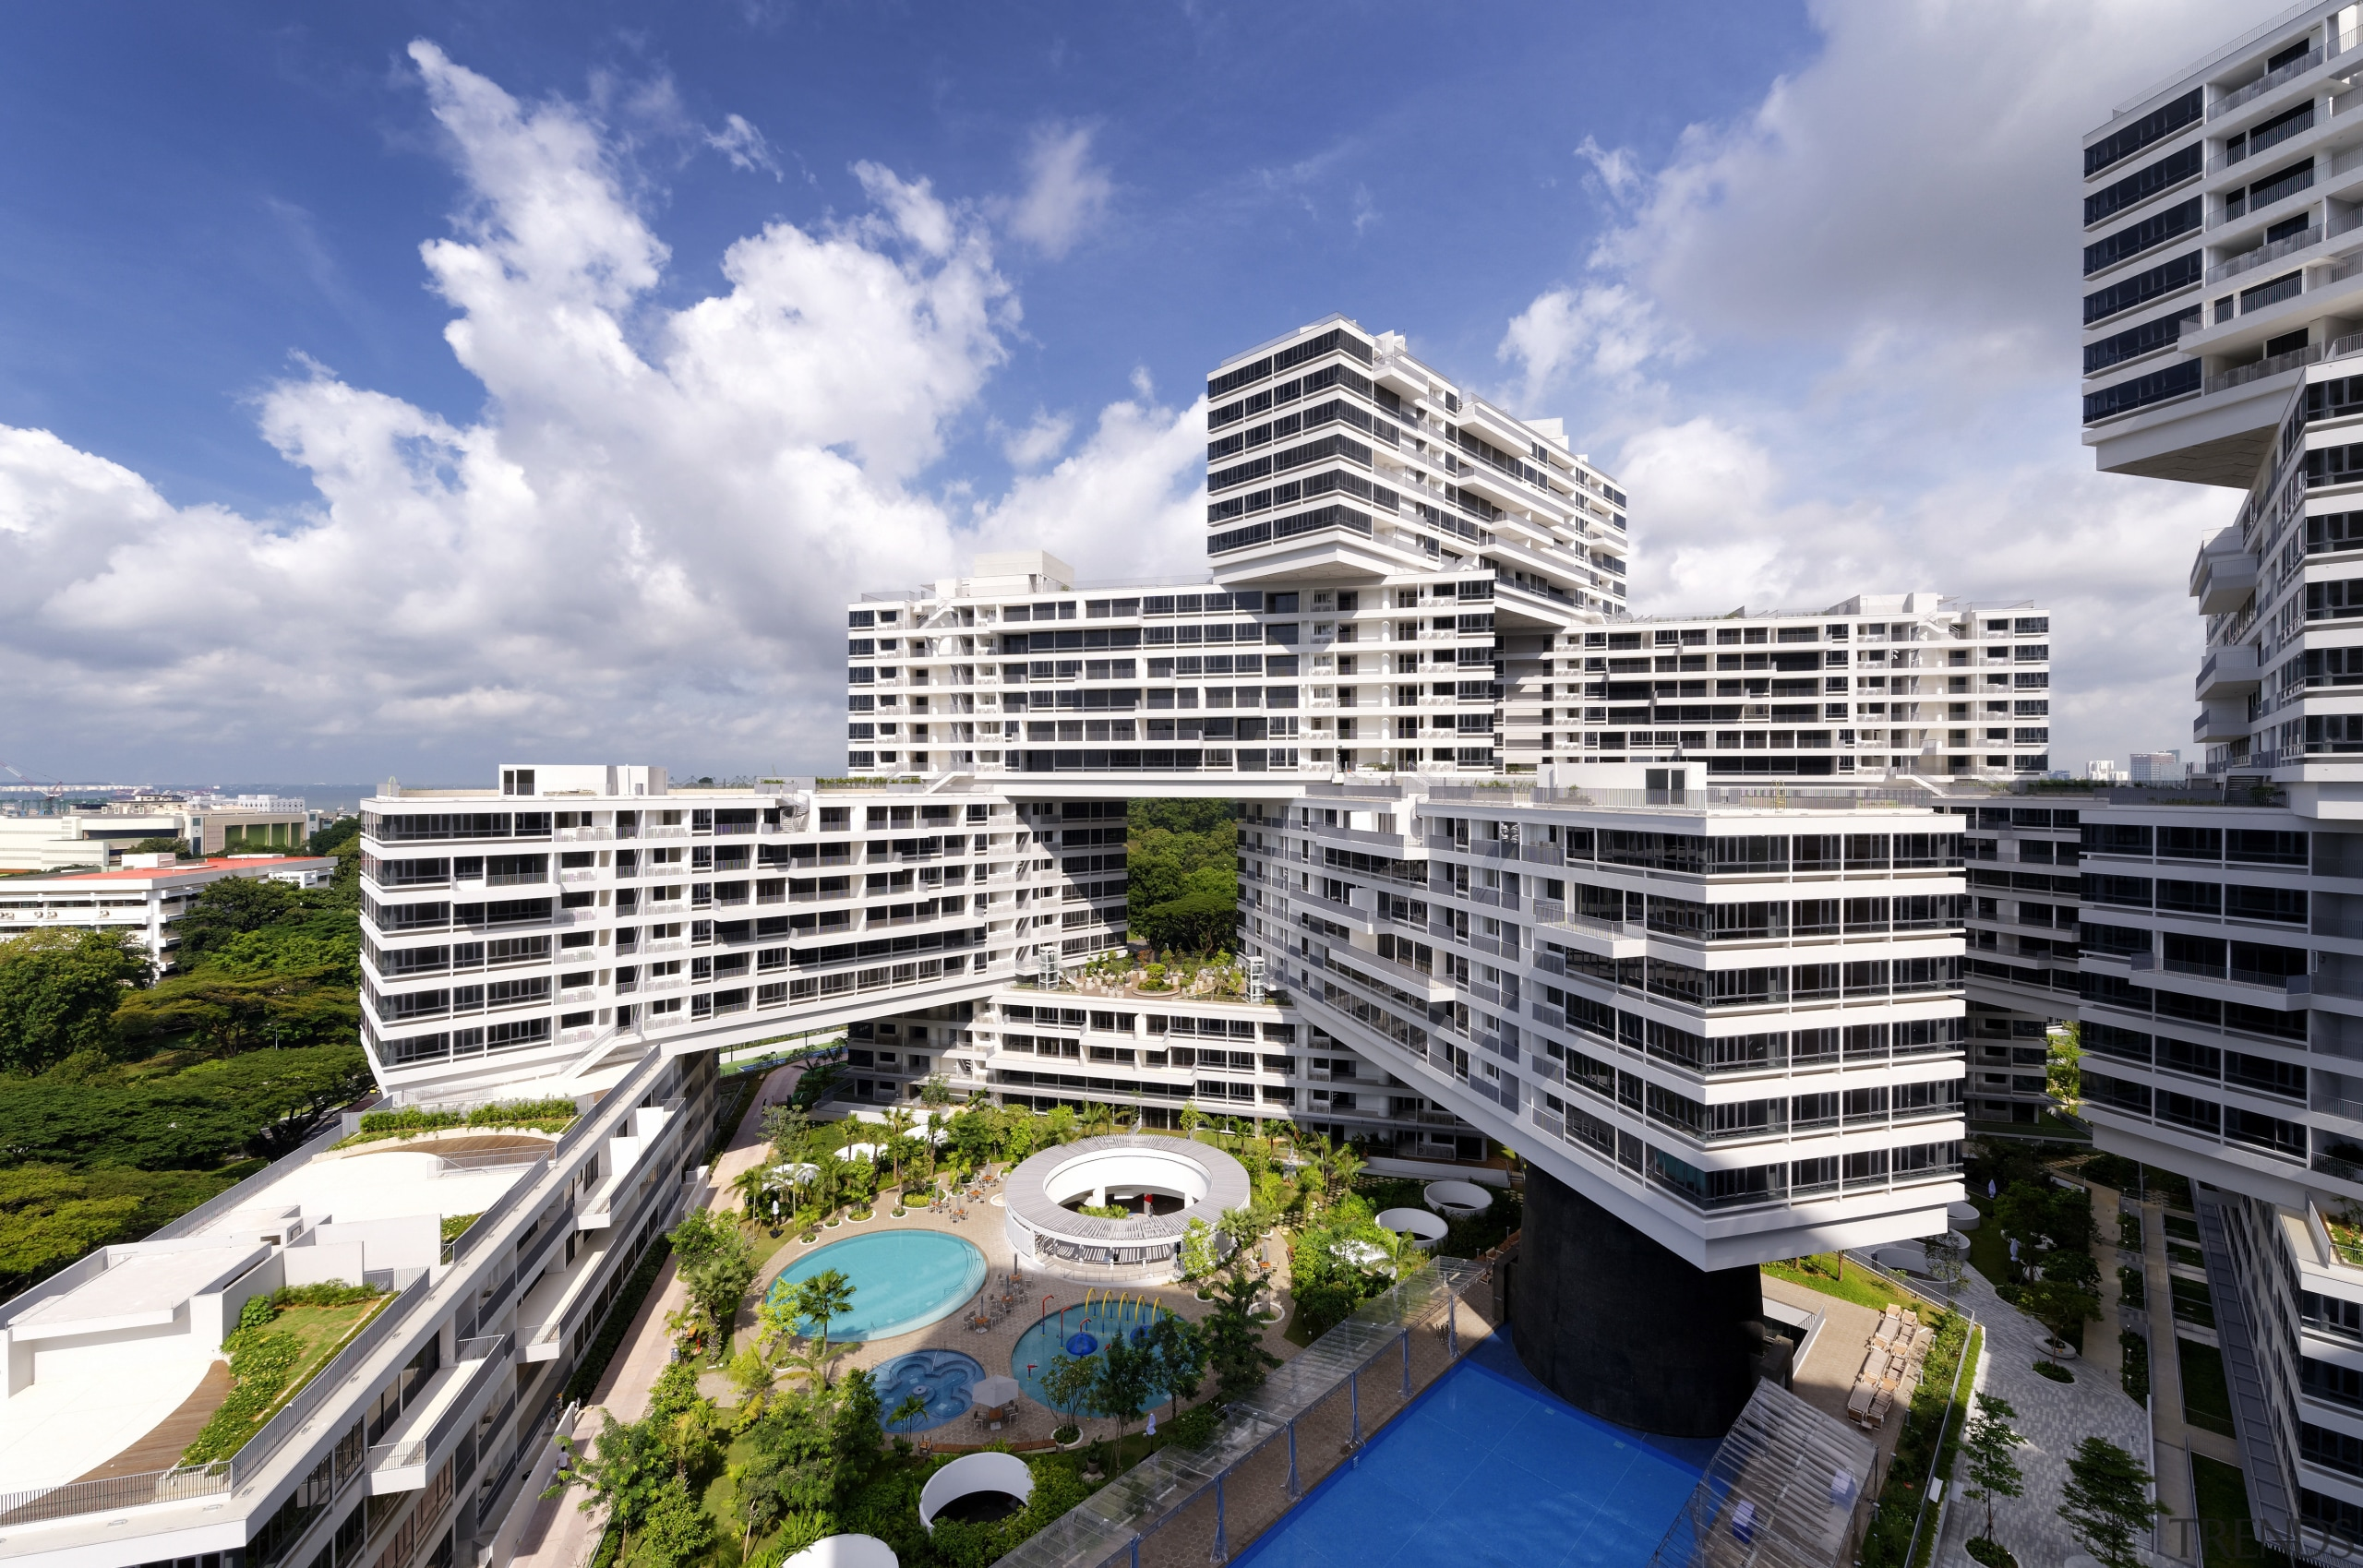 The Interlace stacked apartment blocks, residential architecture for apartment, architecture, building, city, commercial building, condominium, corporate headquarters, daytime, headquarters, metropolis, metropolitan area, mixed use, neighbourhood, property, real estate, residential area, sky, tower block, urban area, urban design, gray